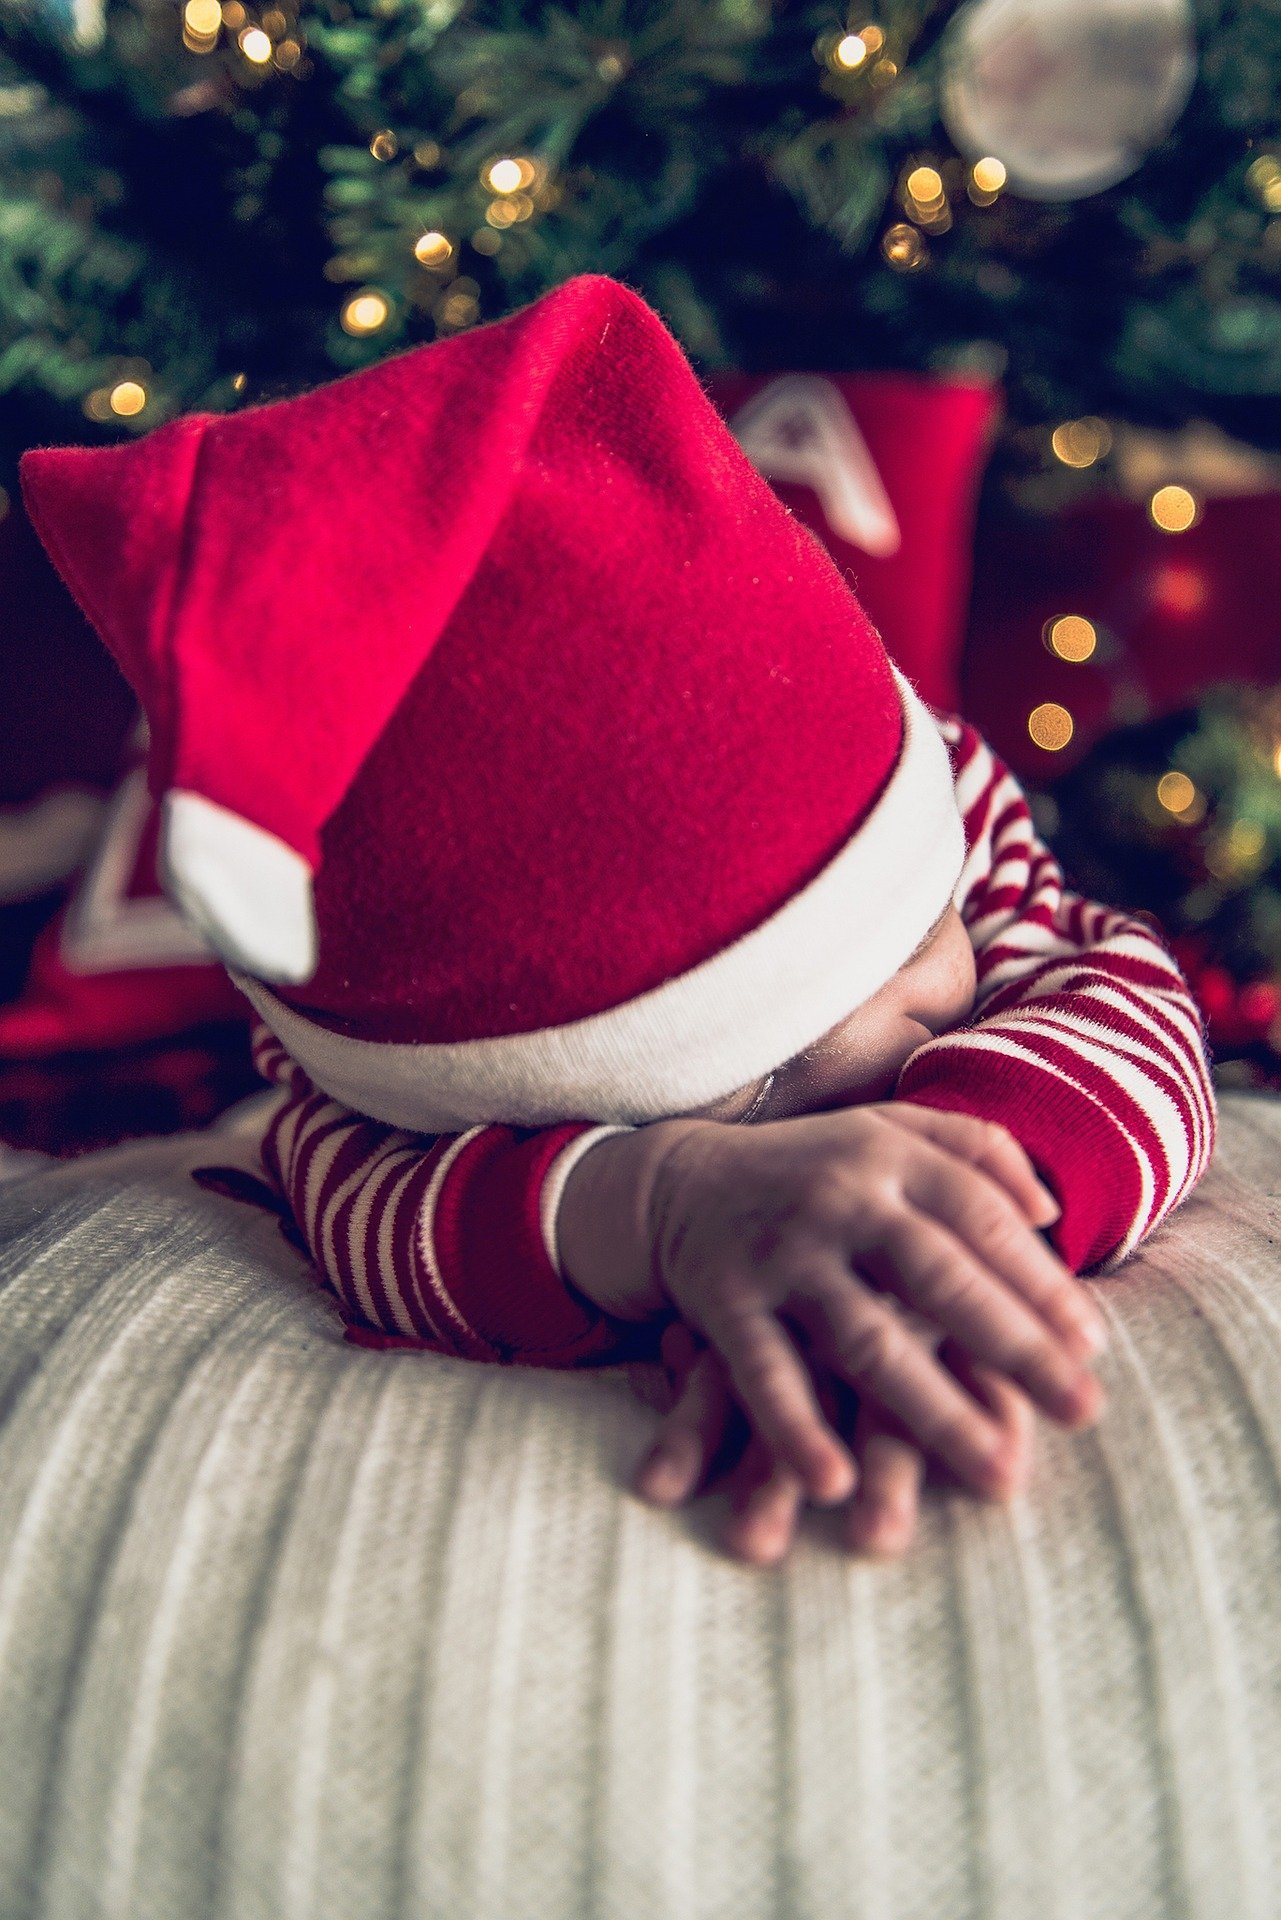 How to prepare for a Christmas baby